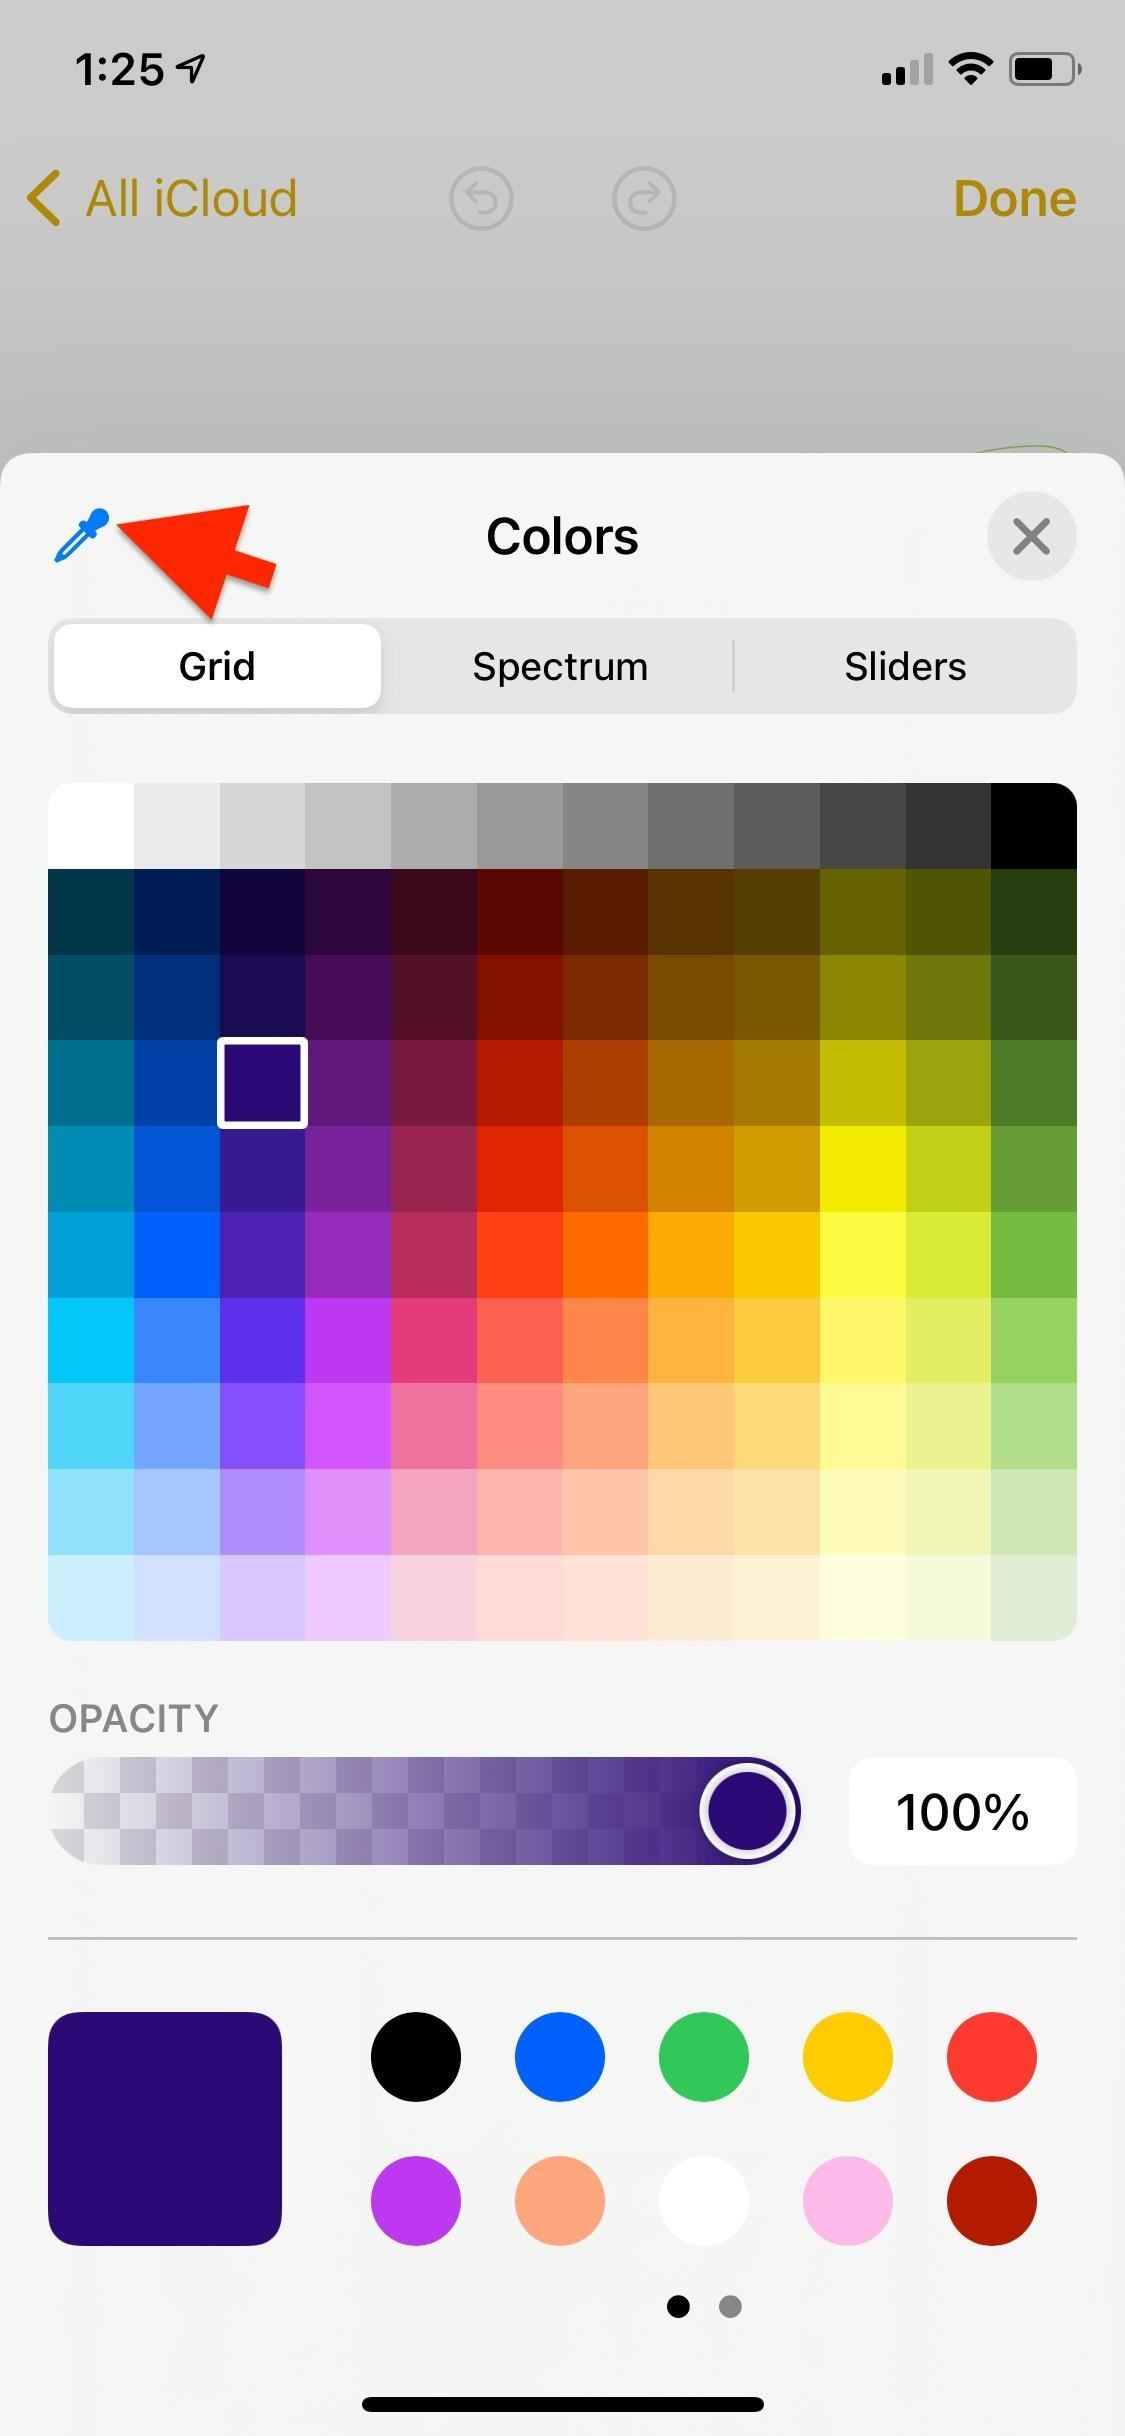 How to Choose the Perfect Hue, Shade, or Tint in Apps with iOS 14's Powerful New Color Picker Tool